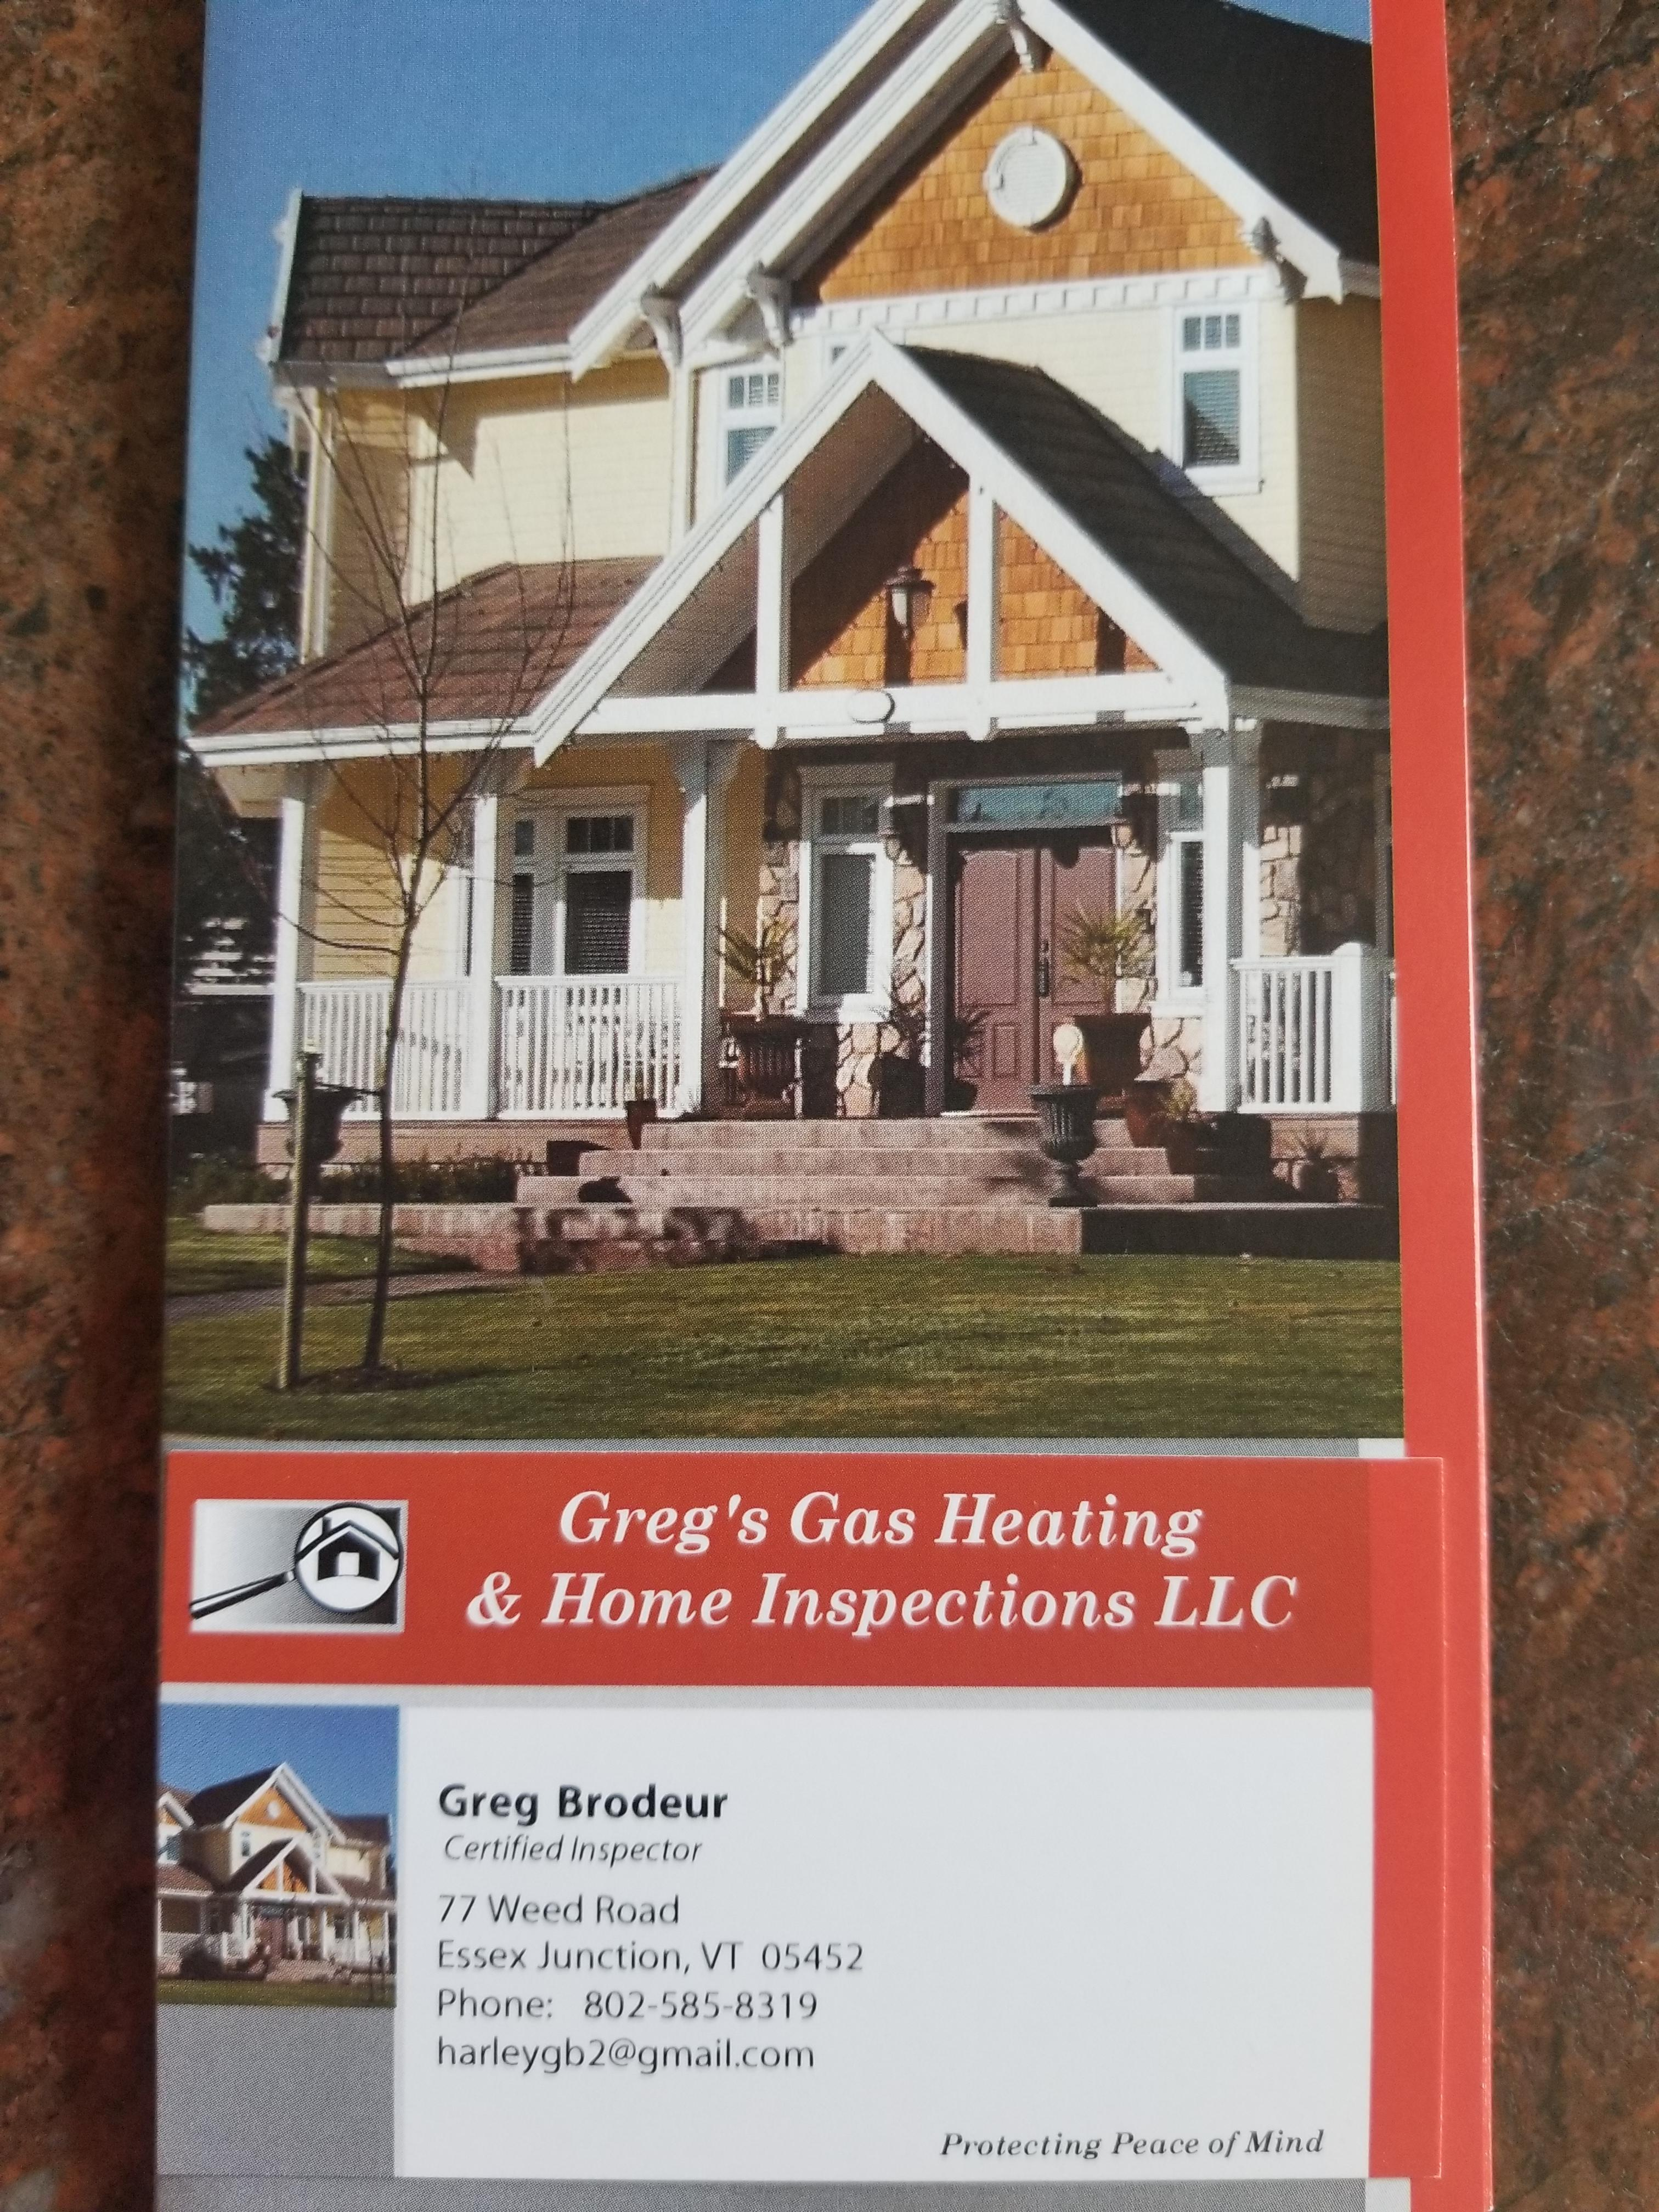 Greg's Gas Heating & Home Inspections LLC image 3